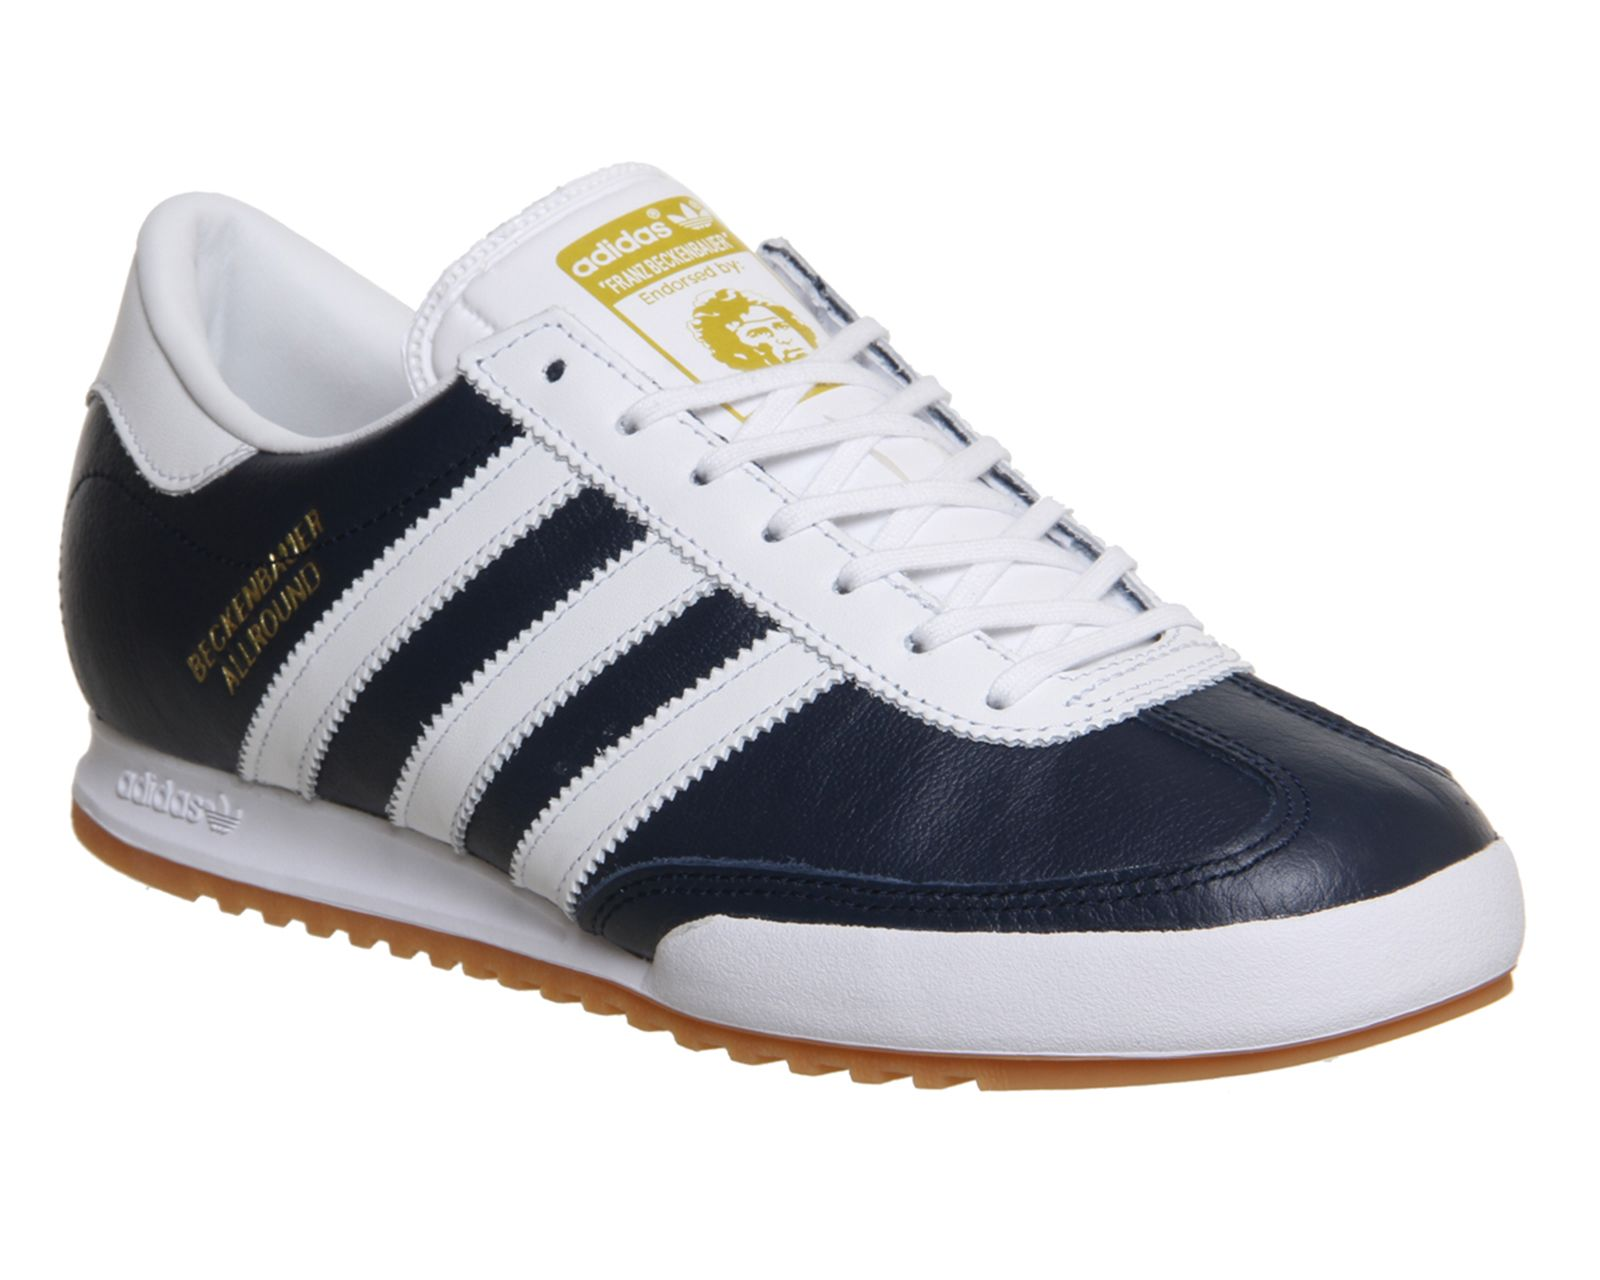 3c6ae67762f5 Adidas Beckenbauer NAVY WHITE GOLD METALLIC Trainers Shoes in 2019 ...